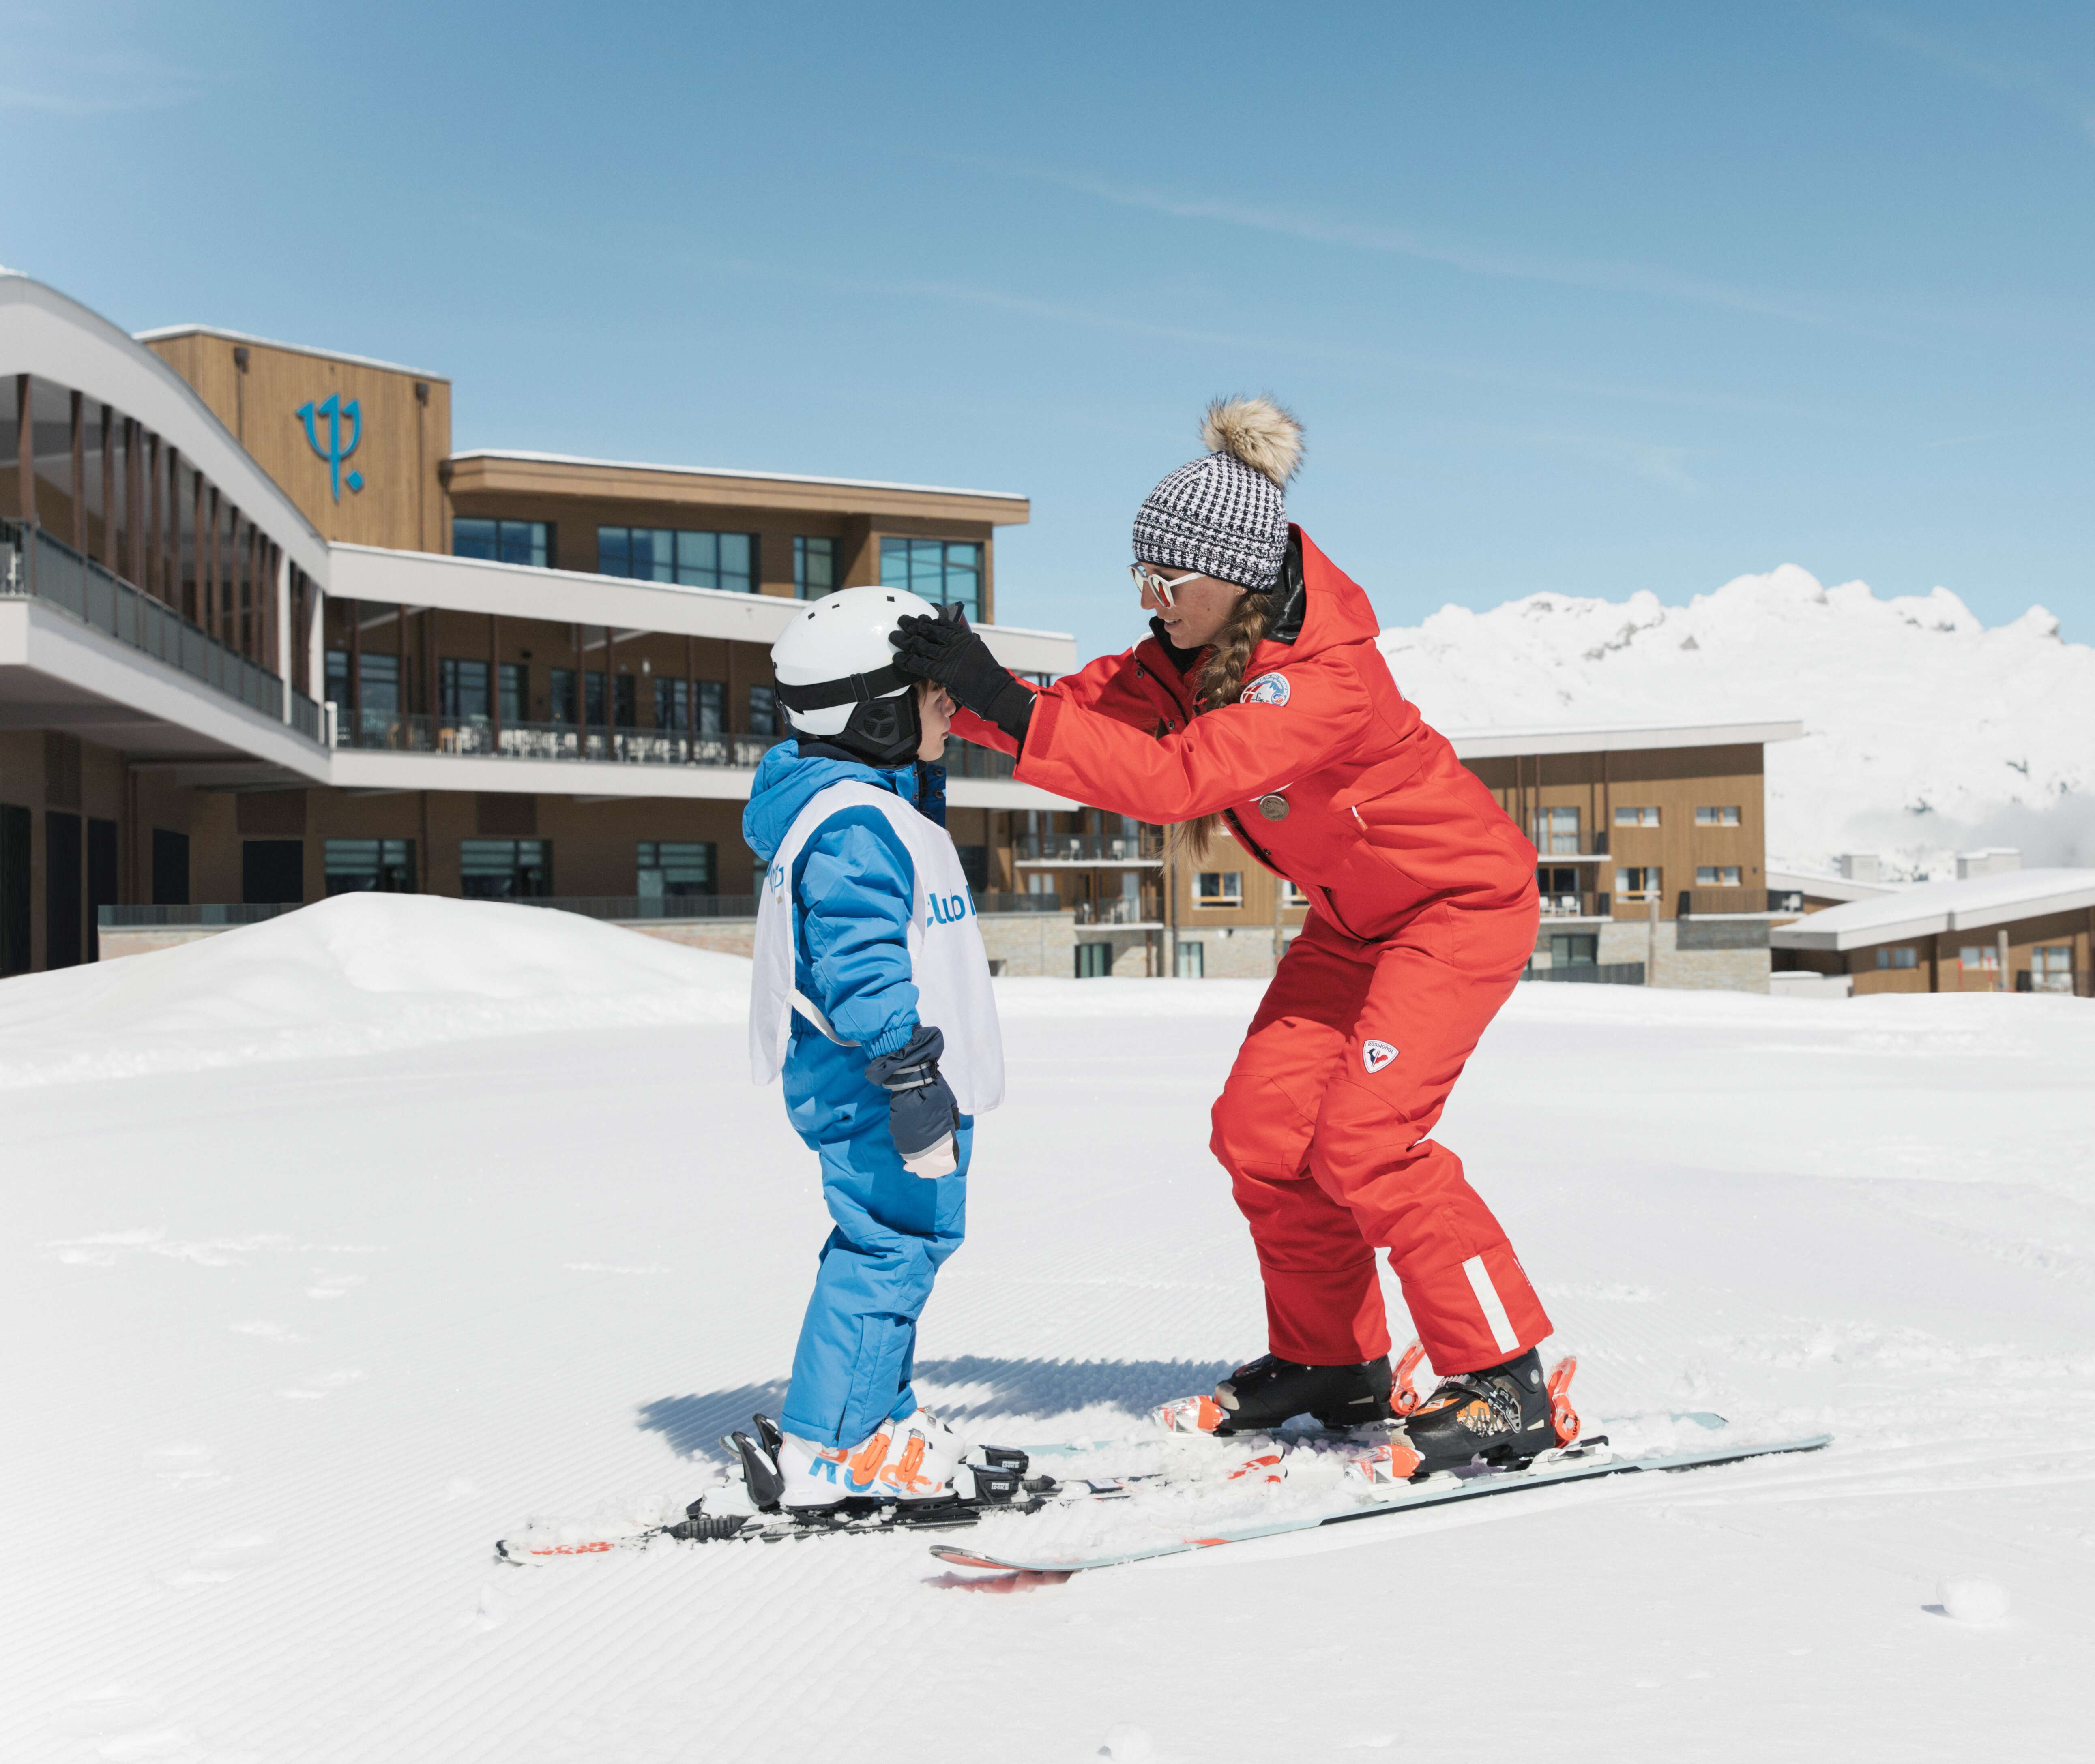 Club Med Snow - Ski Instructor